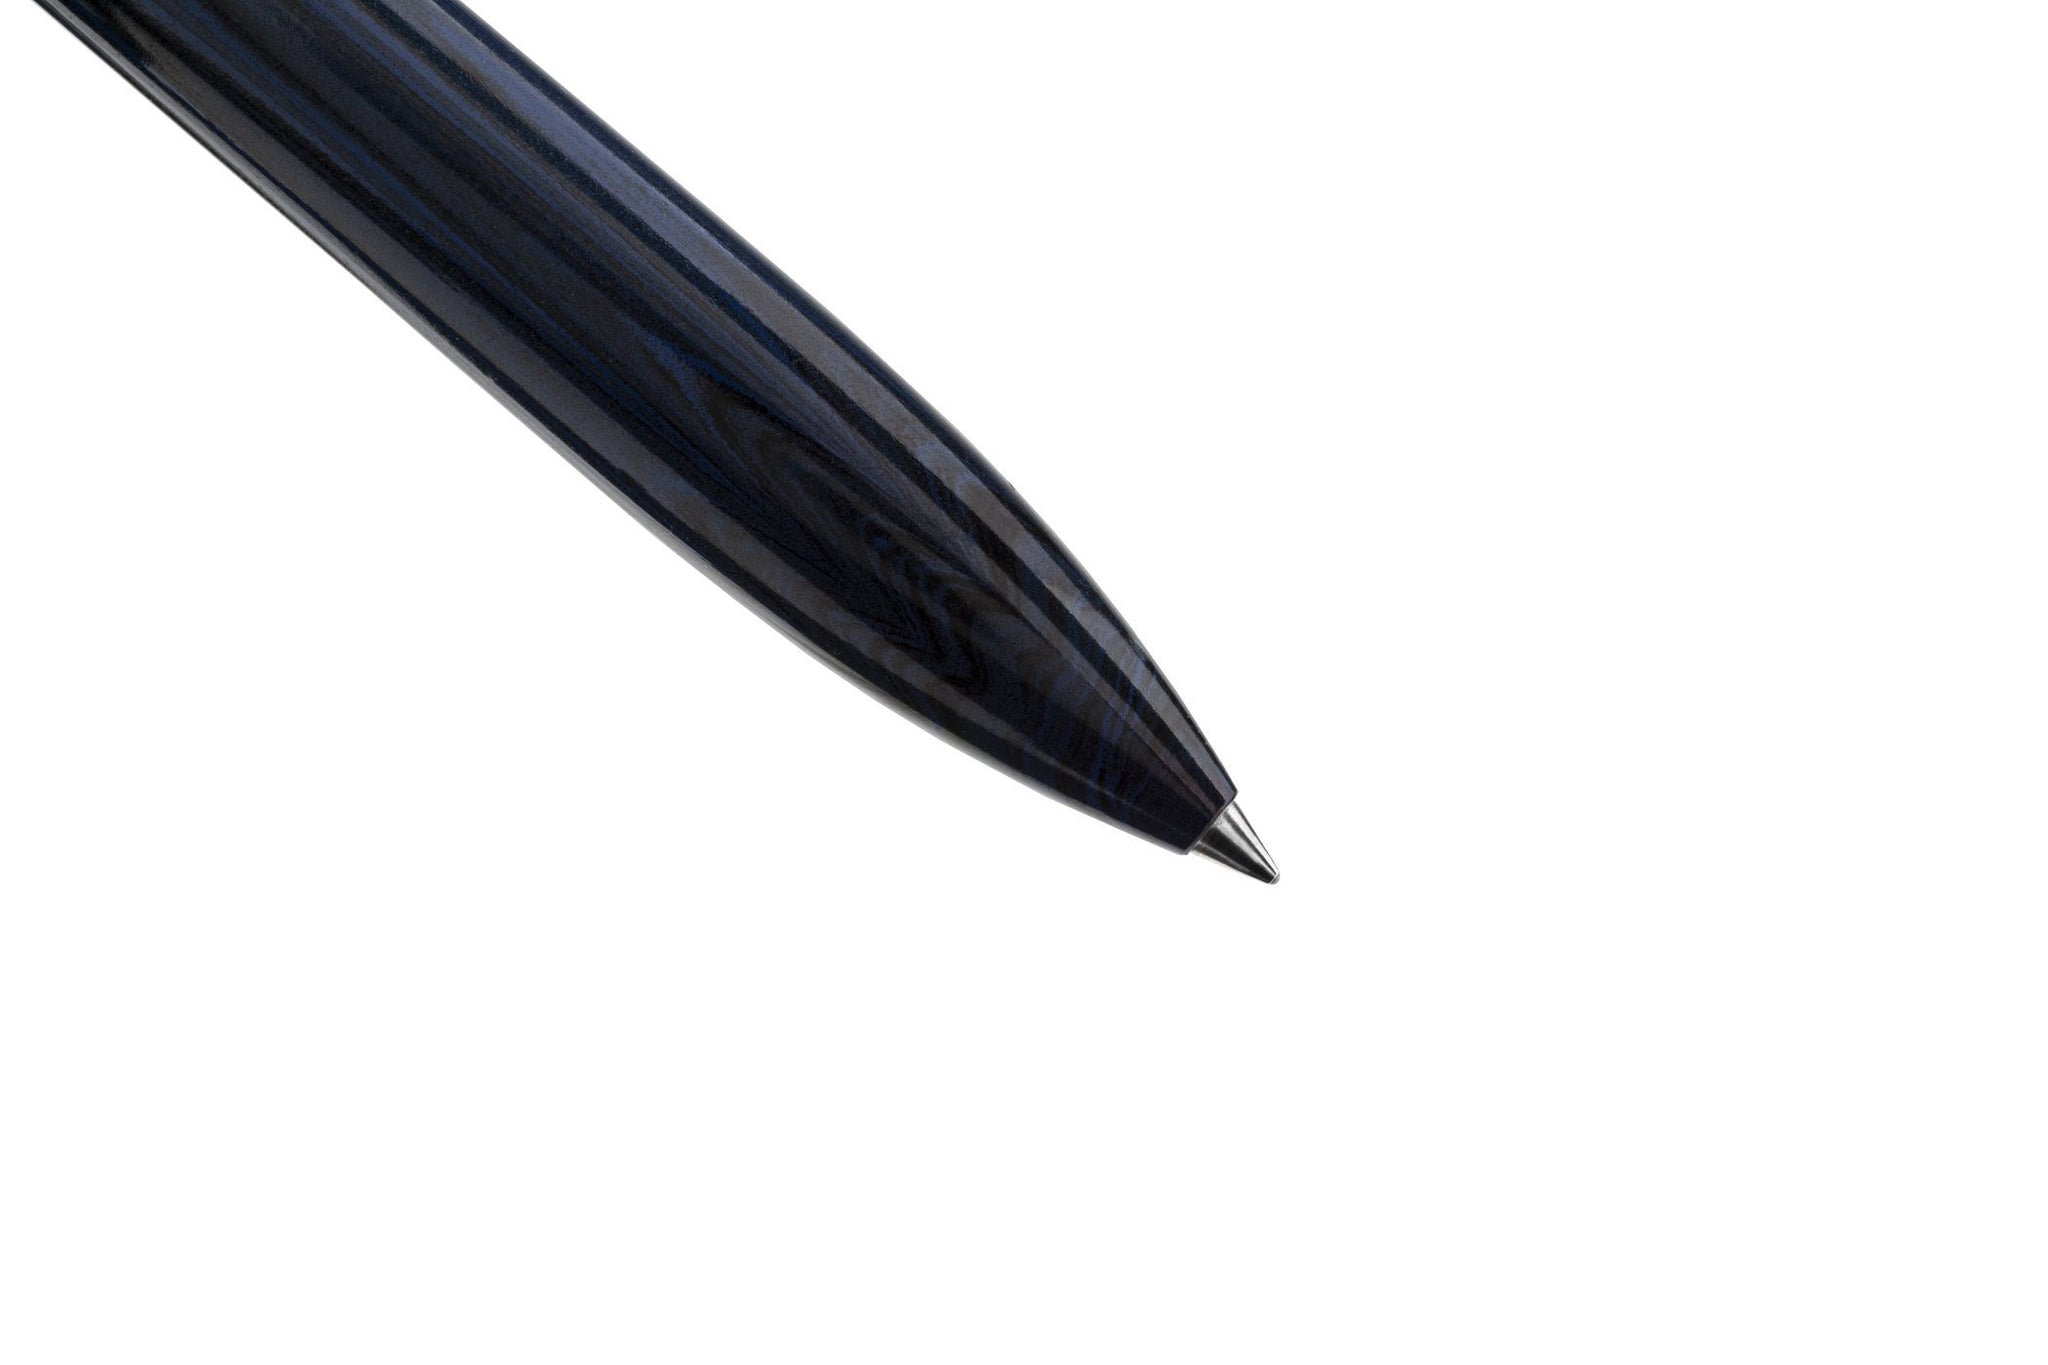 Ajoto - The Pen (Indigo Ebonite)